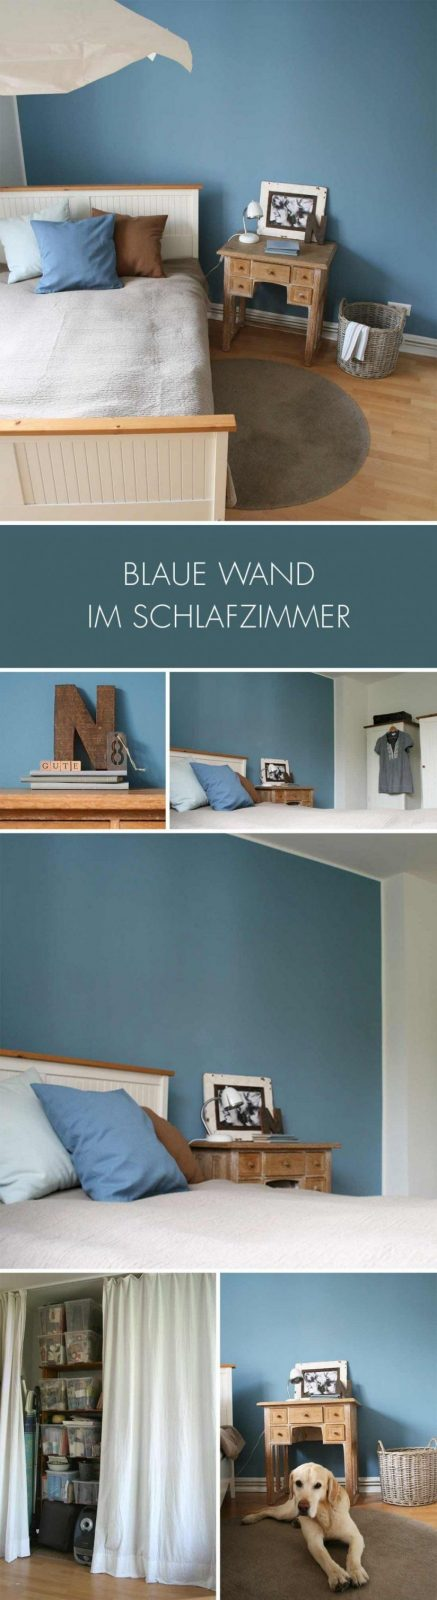 wandfarbe grau gr n schlafzimmer schlafzimmer deko alpen musterring set ideen dachgeschoss muss. Black Bedroom Furniture Sets. Home Design Ideas